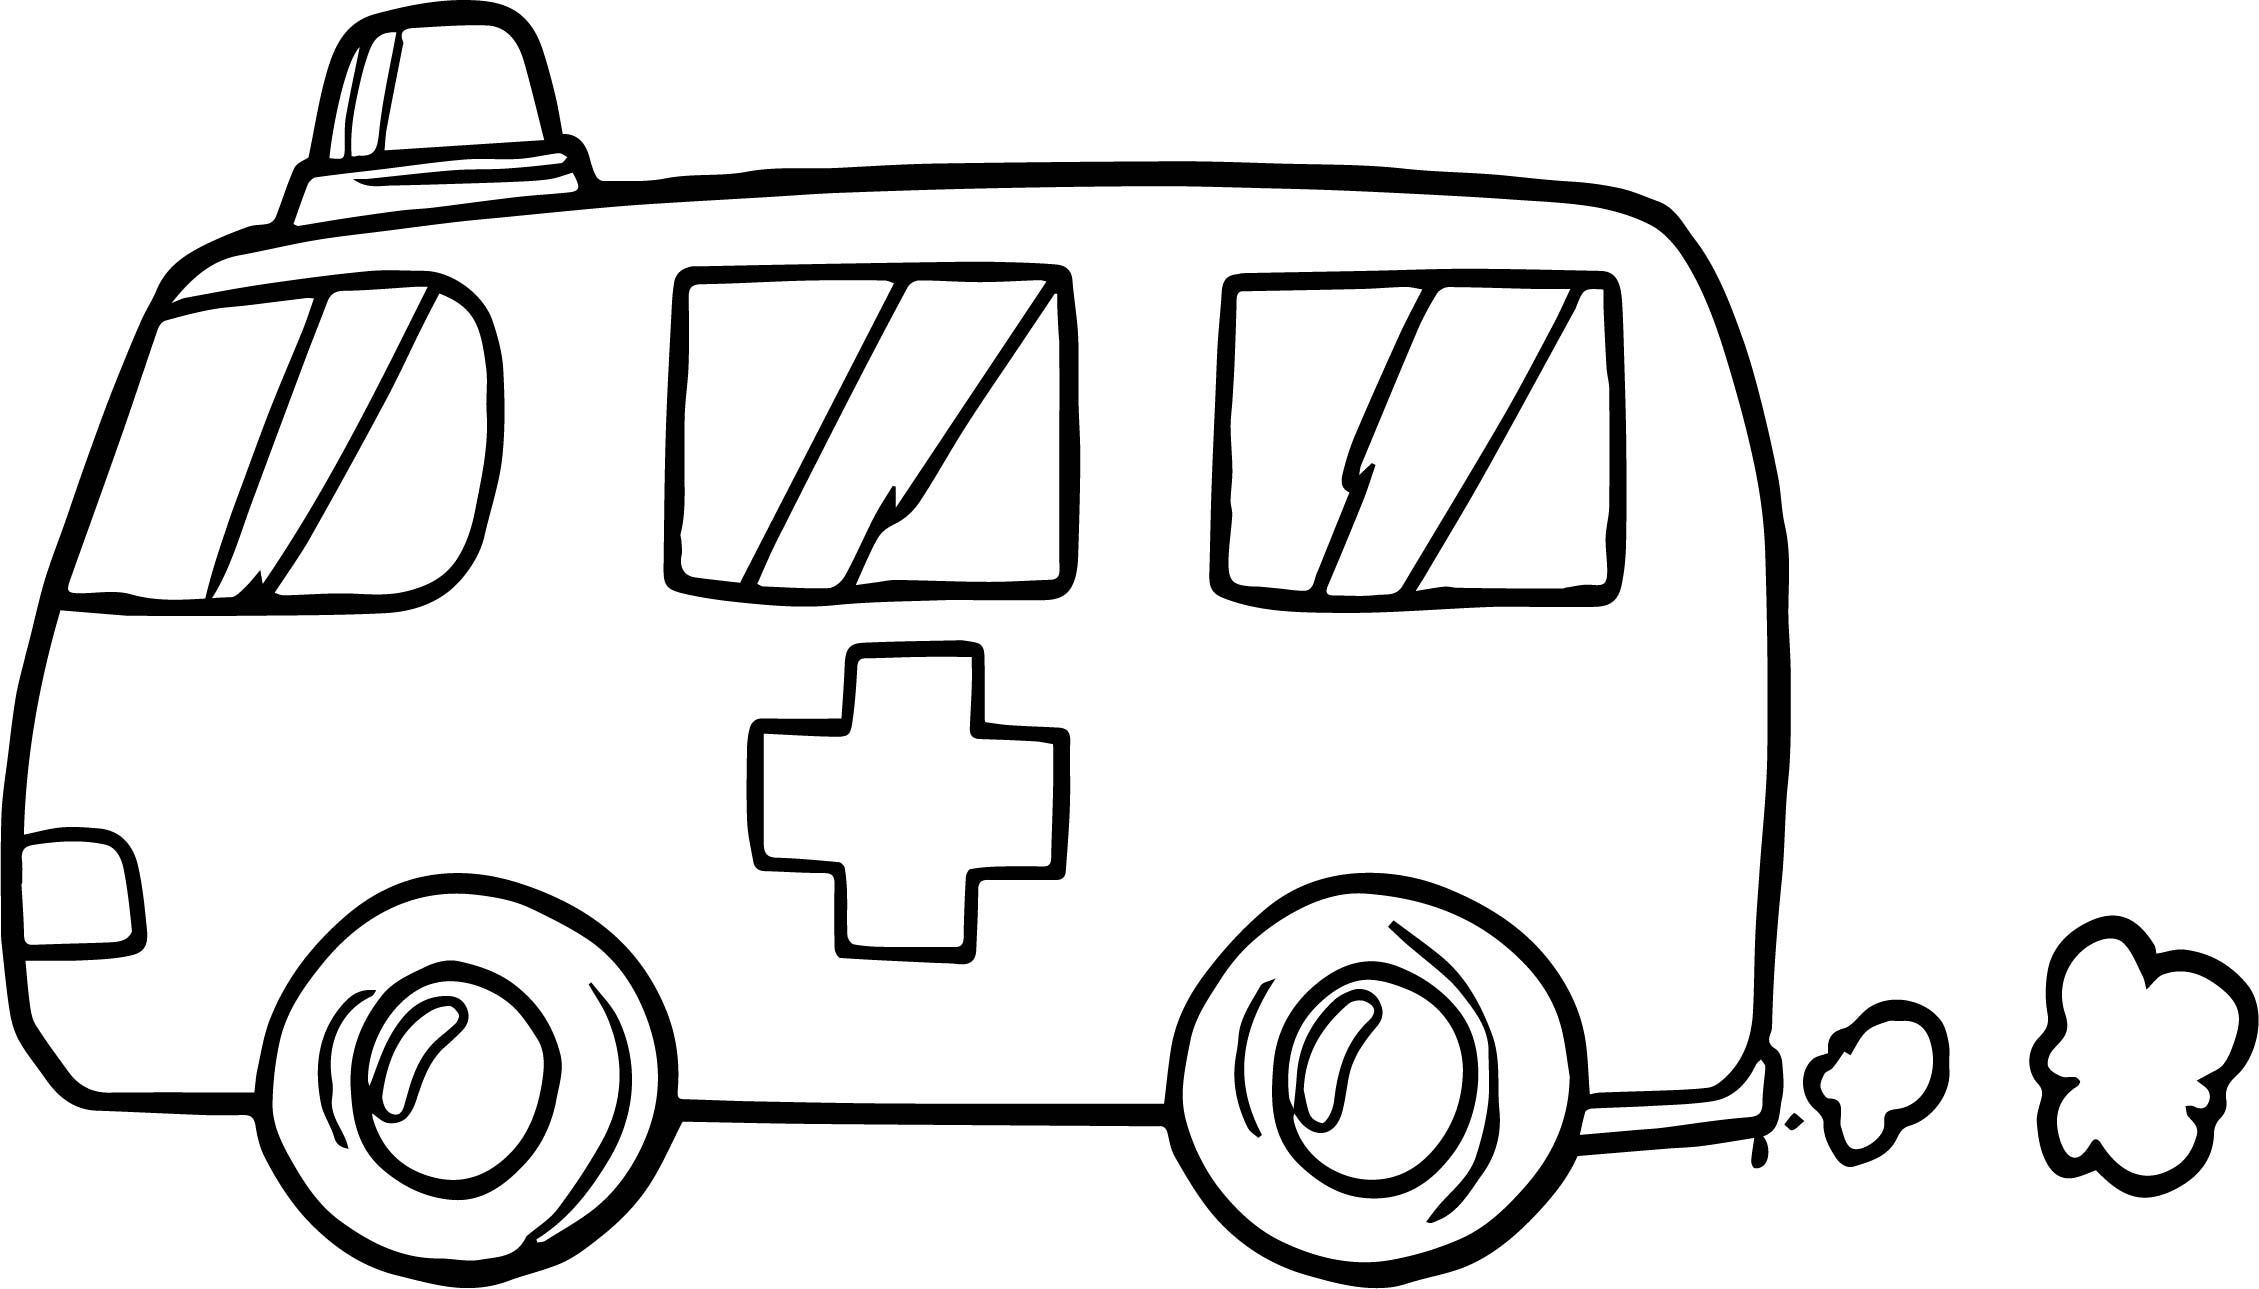 Cool Fast Ambulance Coloring Page Printable Coloring Pages Printable Coloring Train Coloring Pages